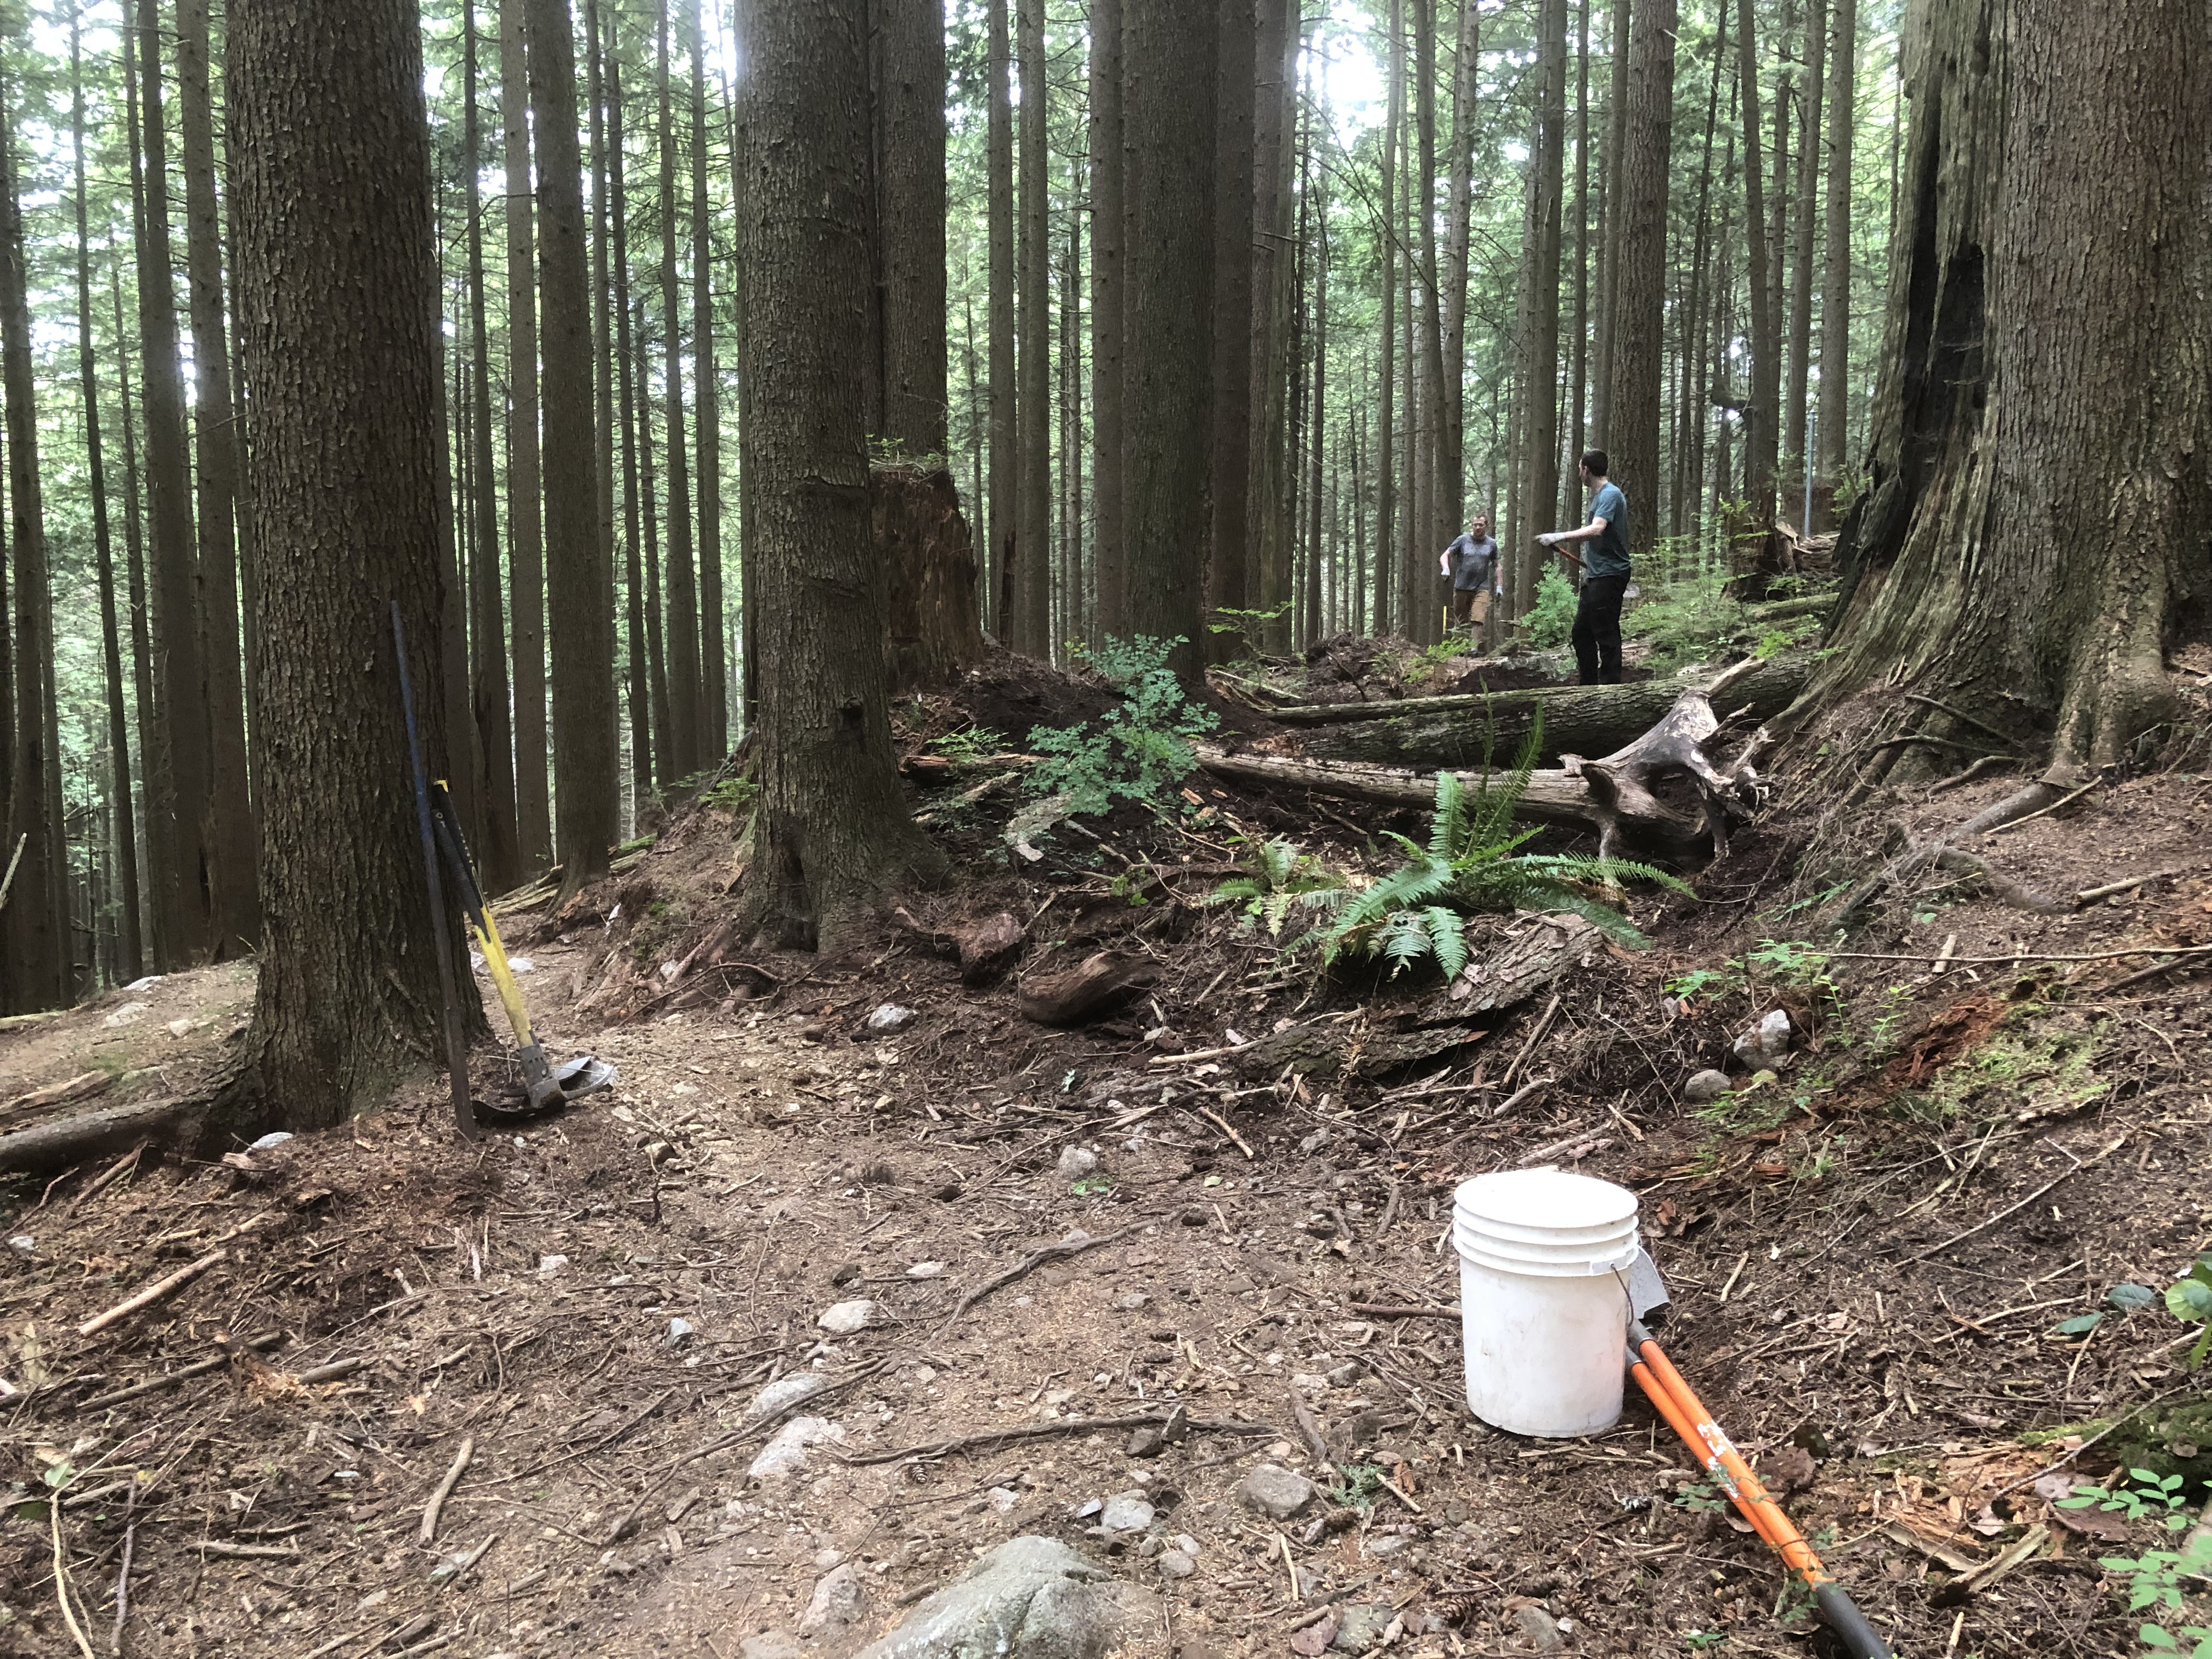 A trail winding through the forest with a bucket and shovel lying on the ground.